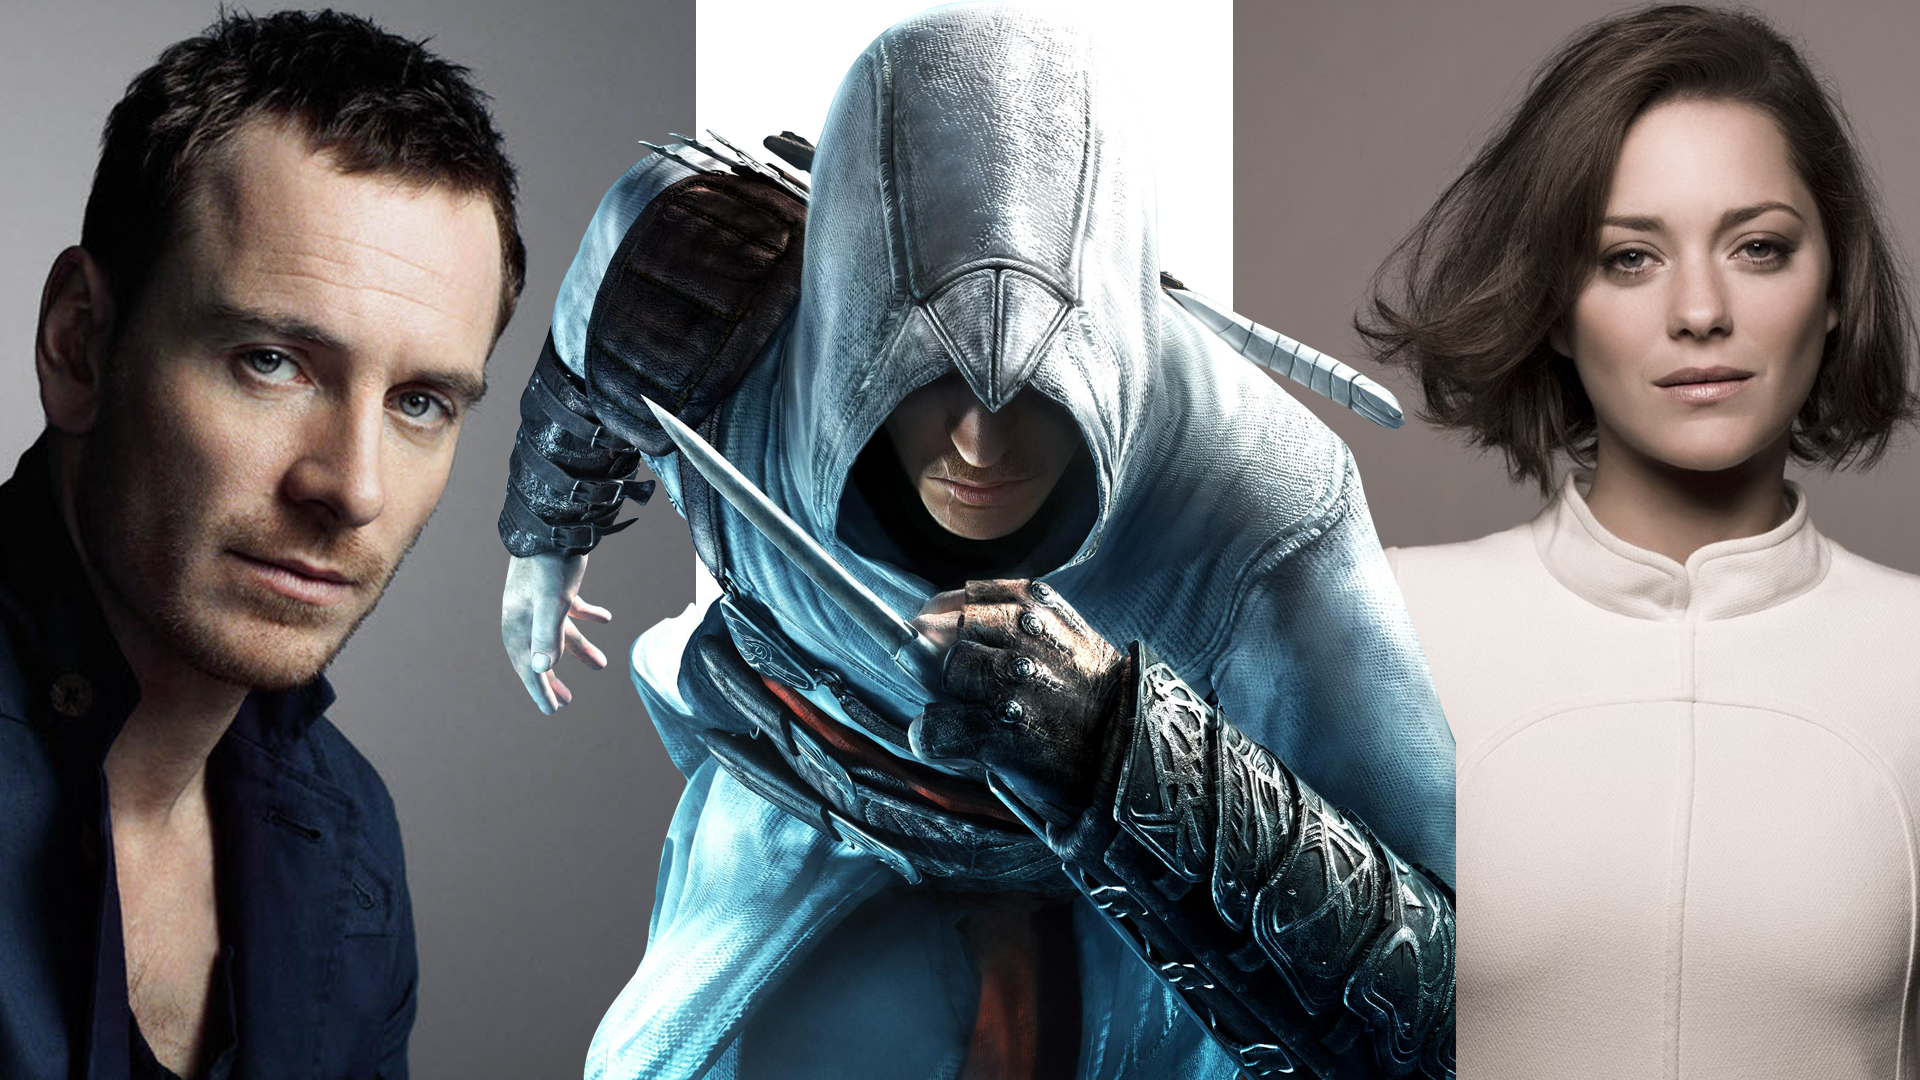 Assassin's Creed movie 2016